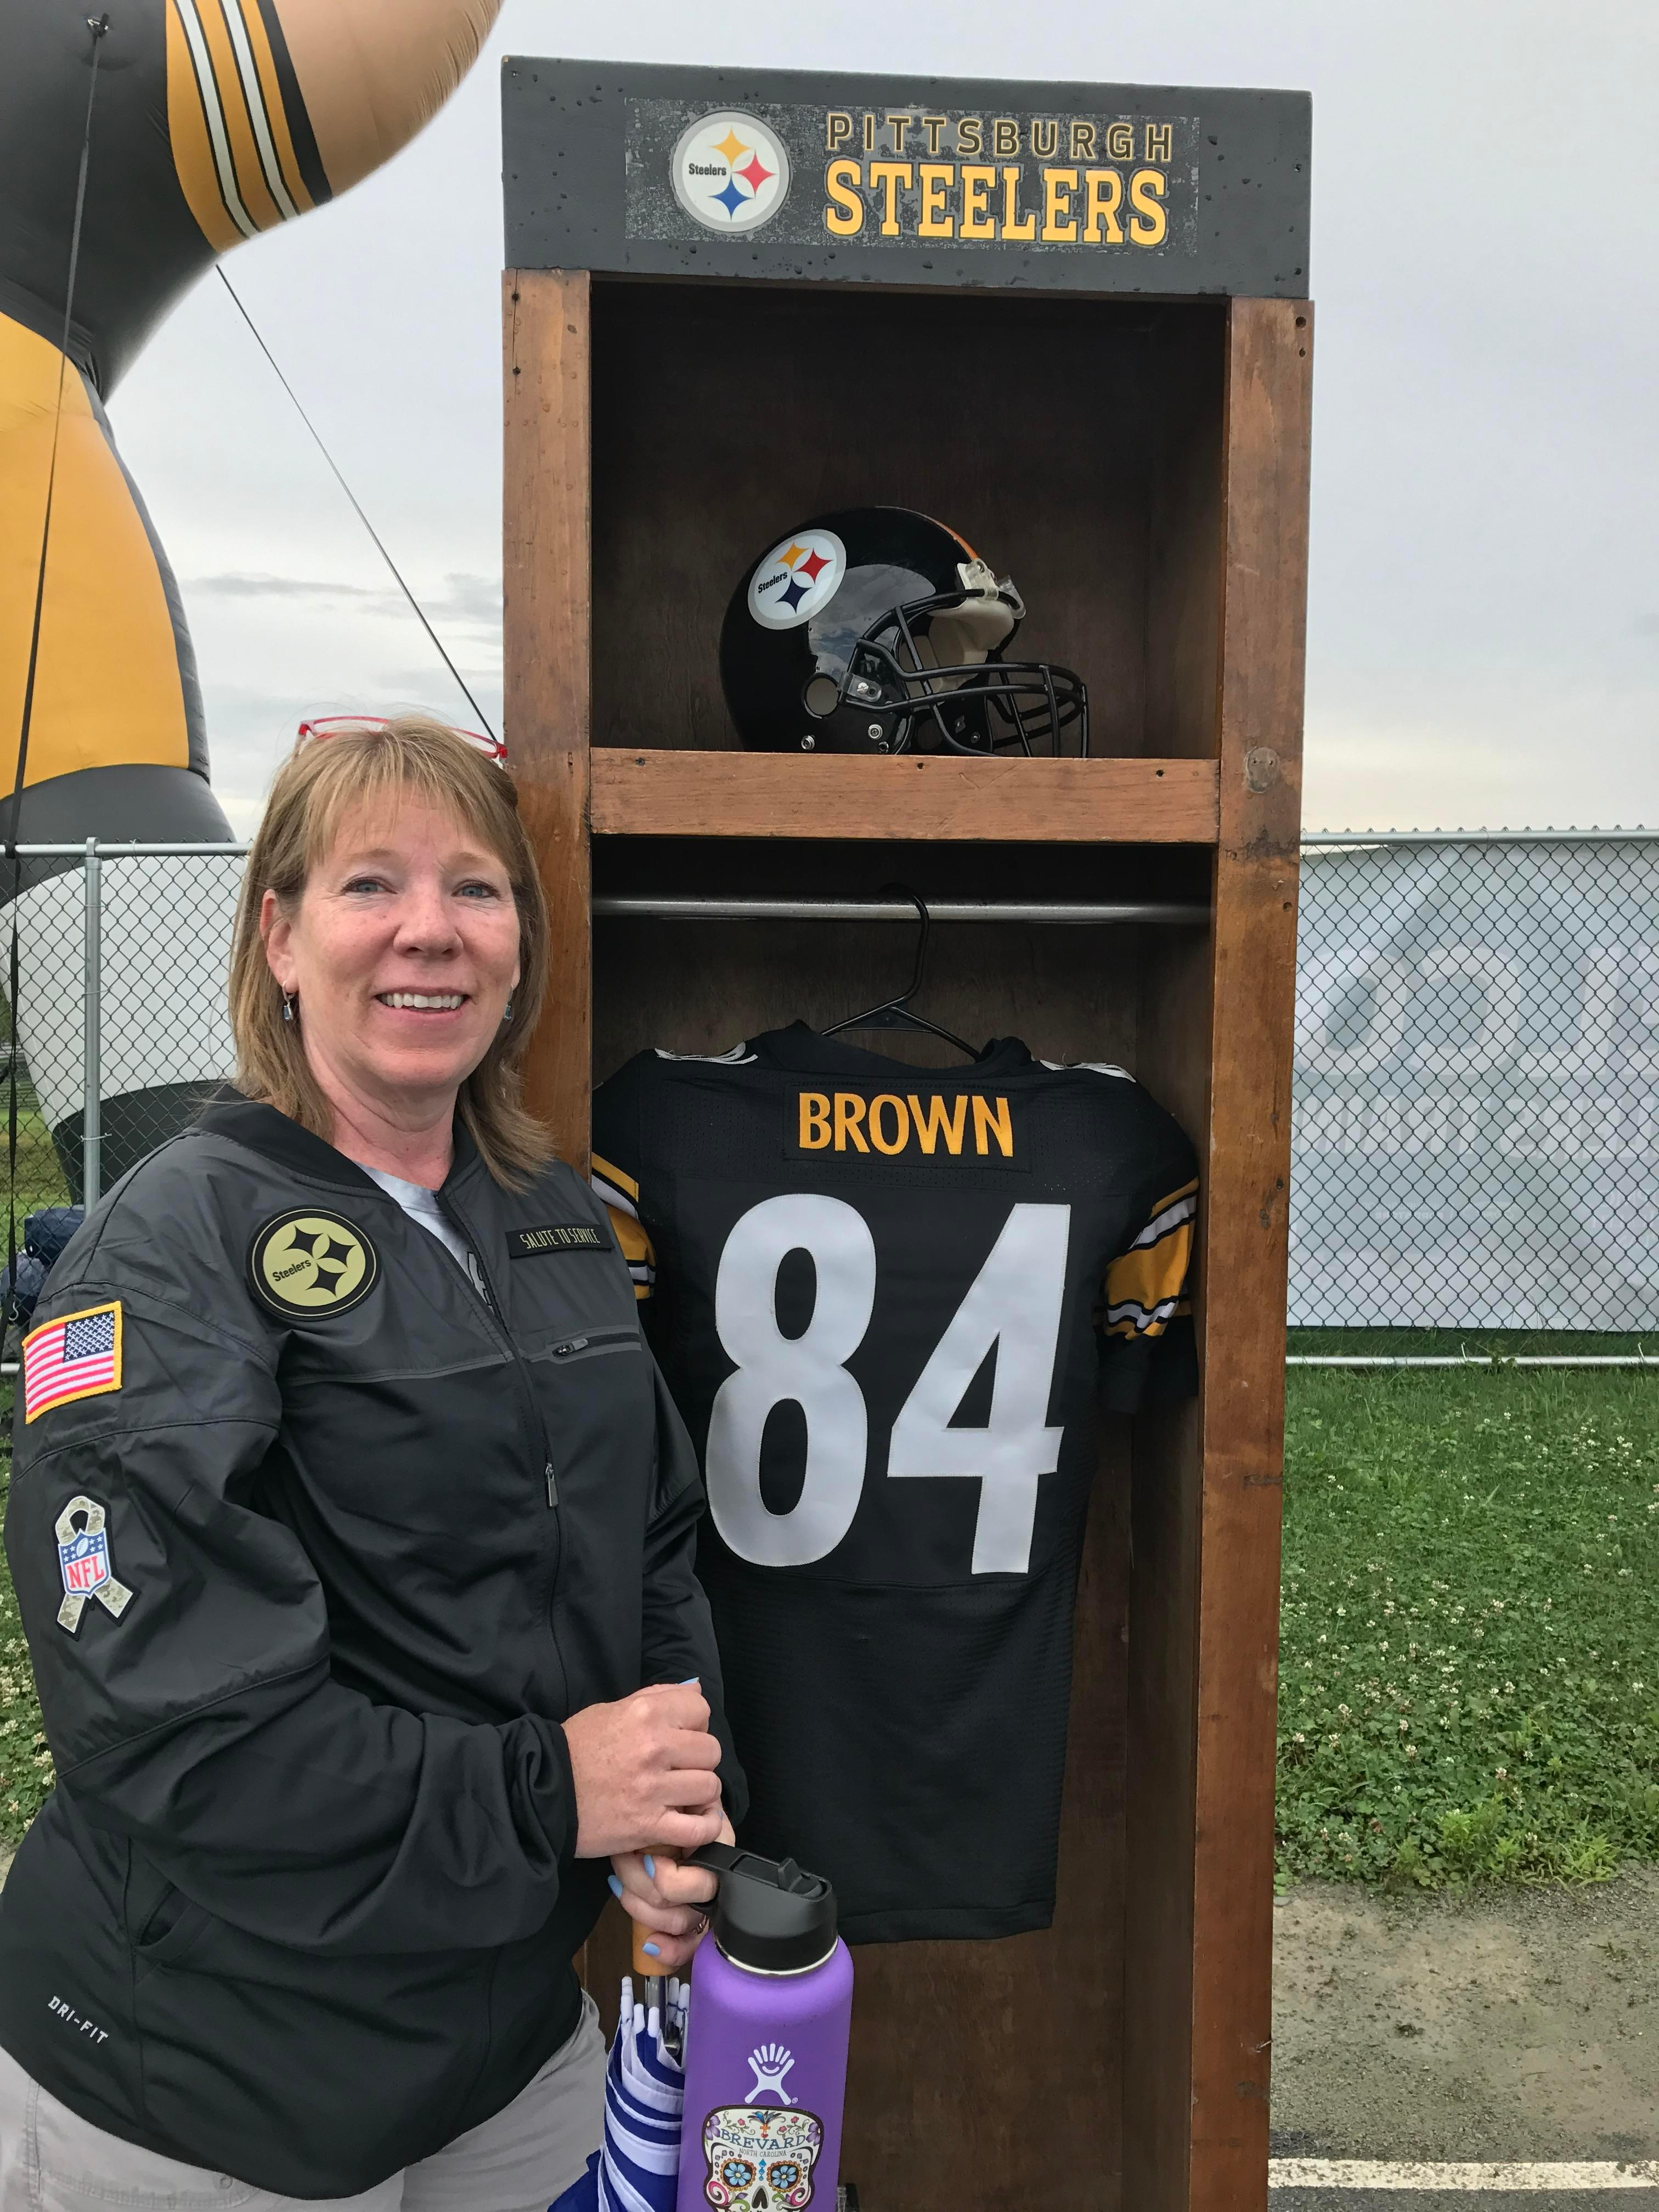 { }FILE - Chantel Sheehan of Asheville said she gained enough points with the Steelers Fan Club to be entered into a special raffle. The raffle was for a pregame experience at the Steelers football game against the Browns on Sunday, Dec. 31. (Photo credit: Chantel Sheehan)